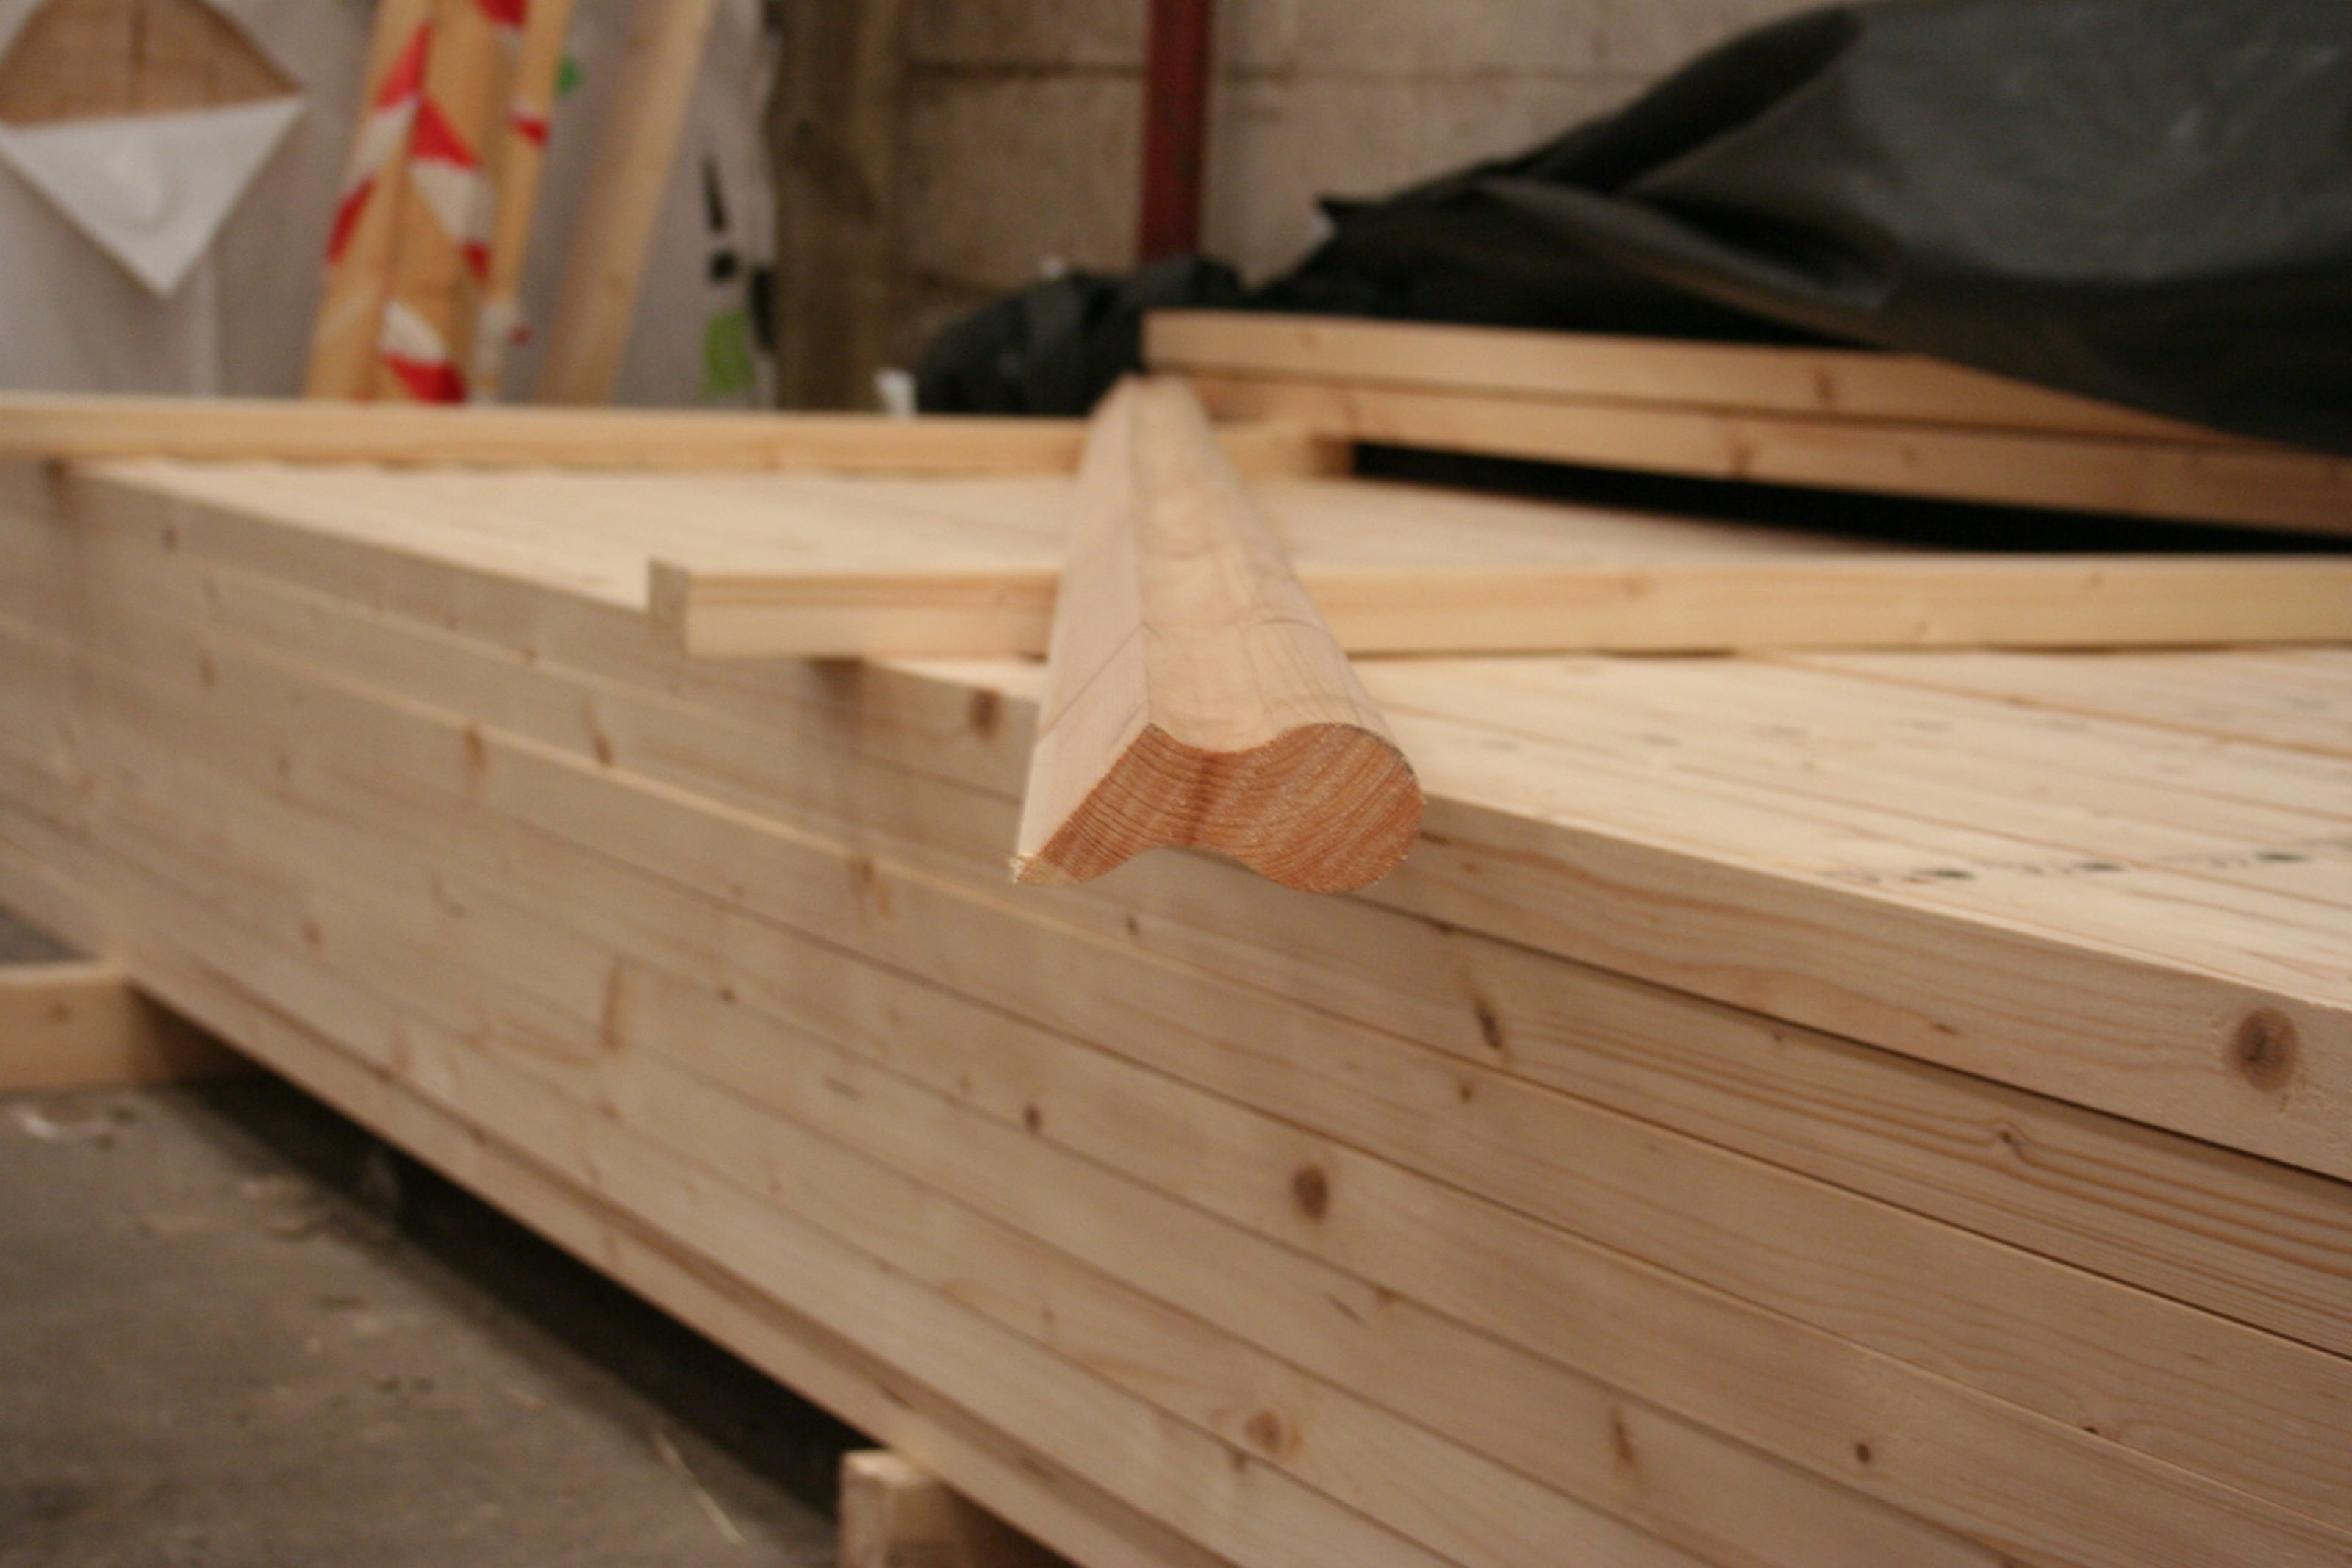 4x2 Softwood Sows Ear Handrail; Image 8119